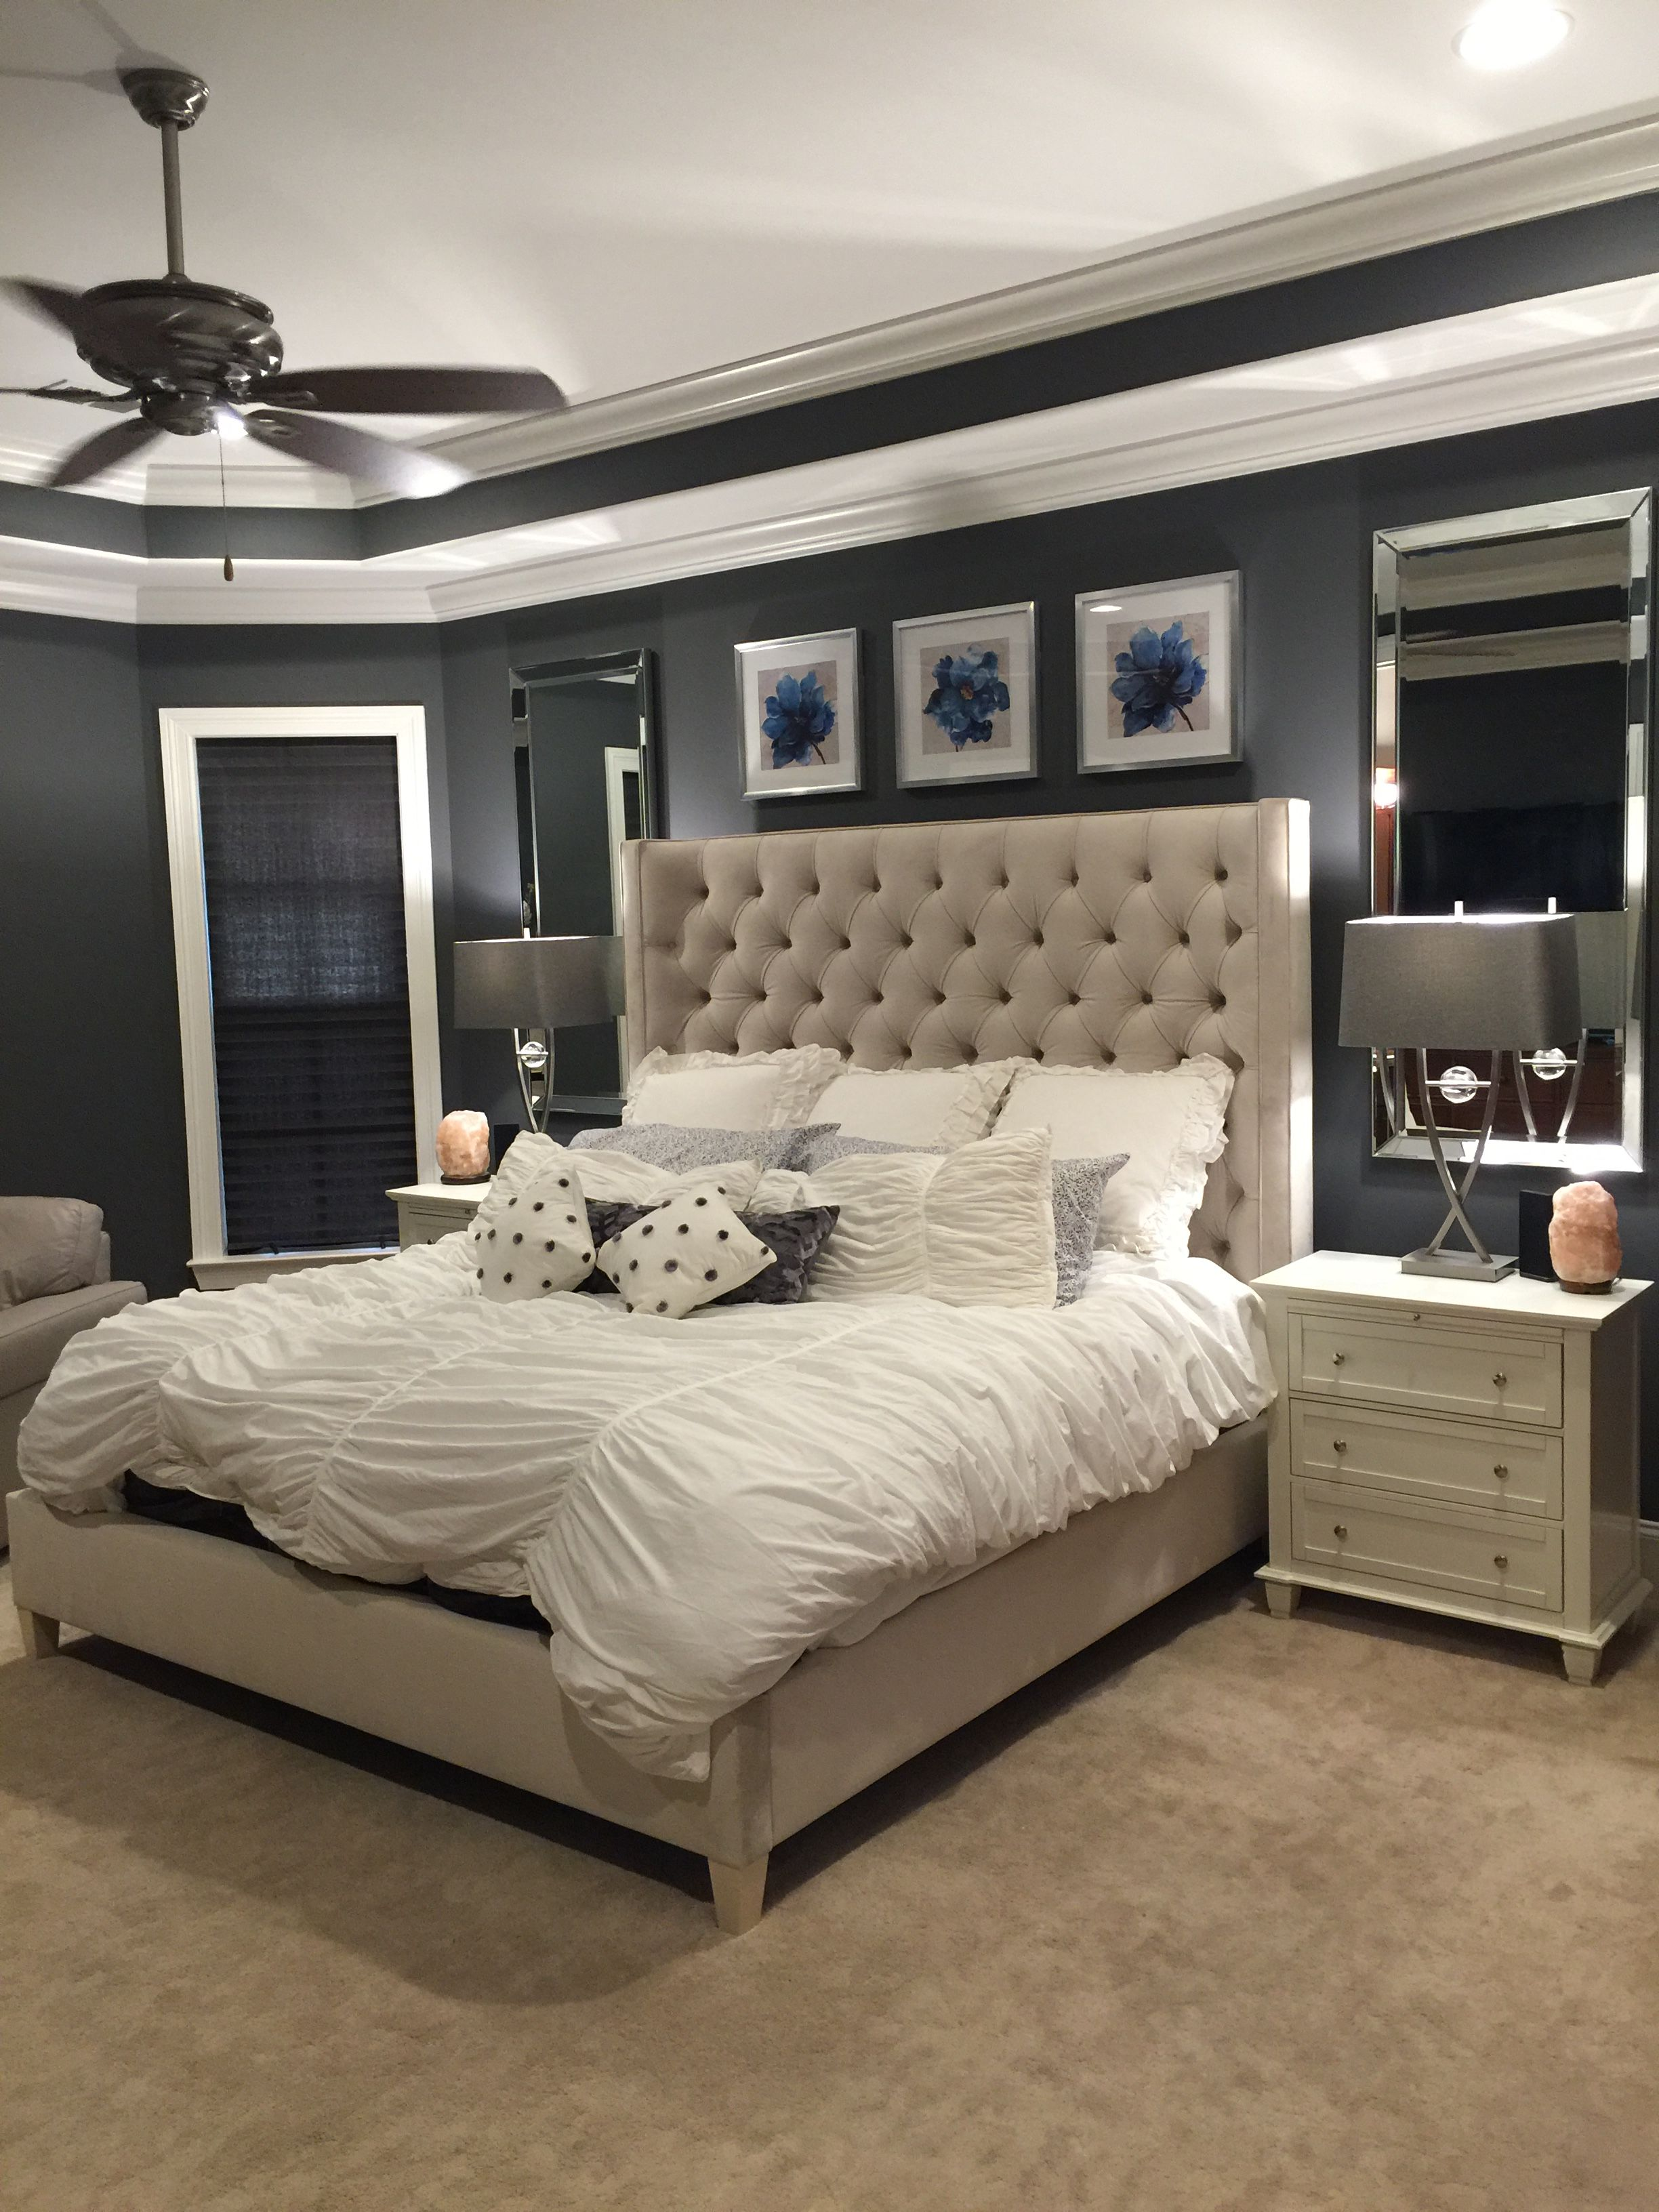 Serene Bedroom- Bed by Master Bedroom color.NO WHITE TRIM. Bernhardt, Lamps  by Pacific Coast, Pictures, Mirrors- HomeGoods, Night tables - Rue La La.